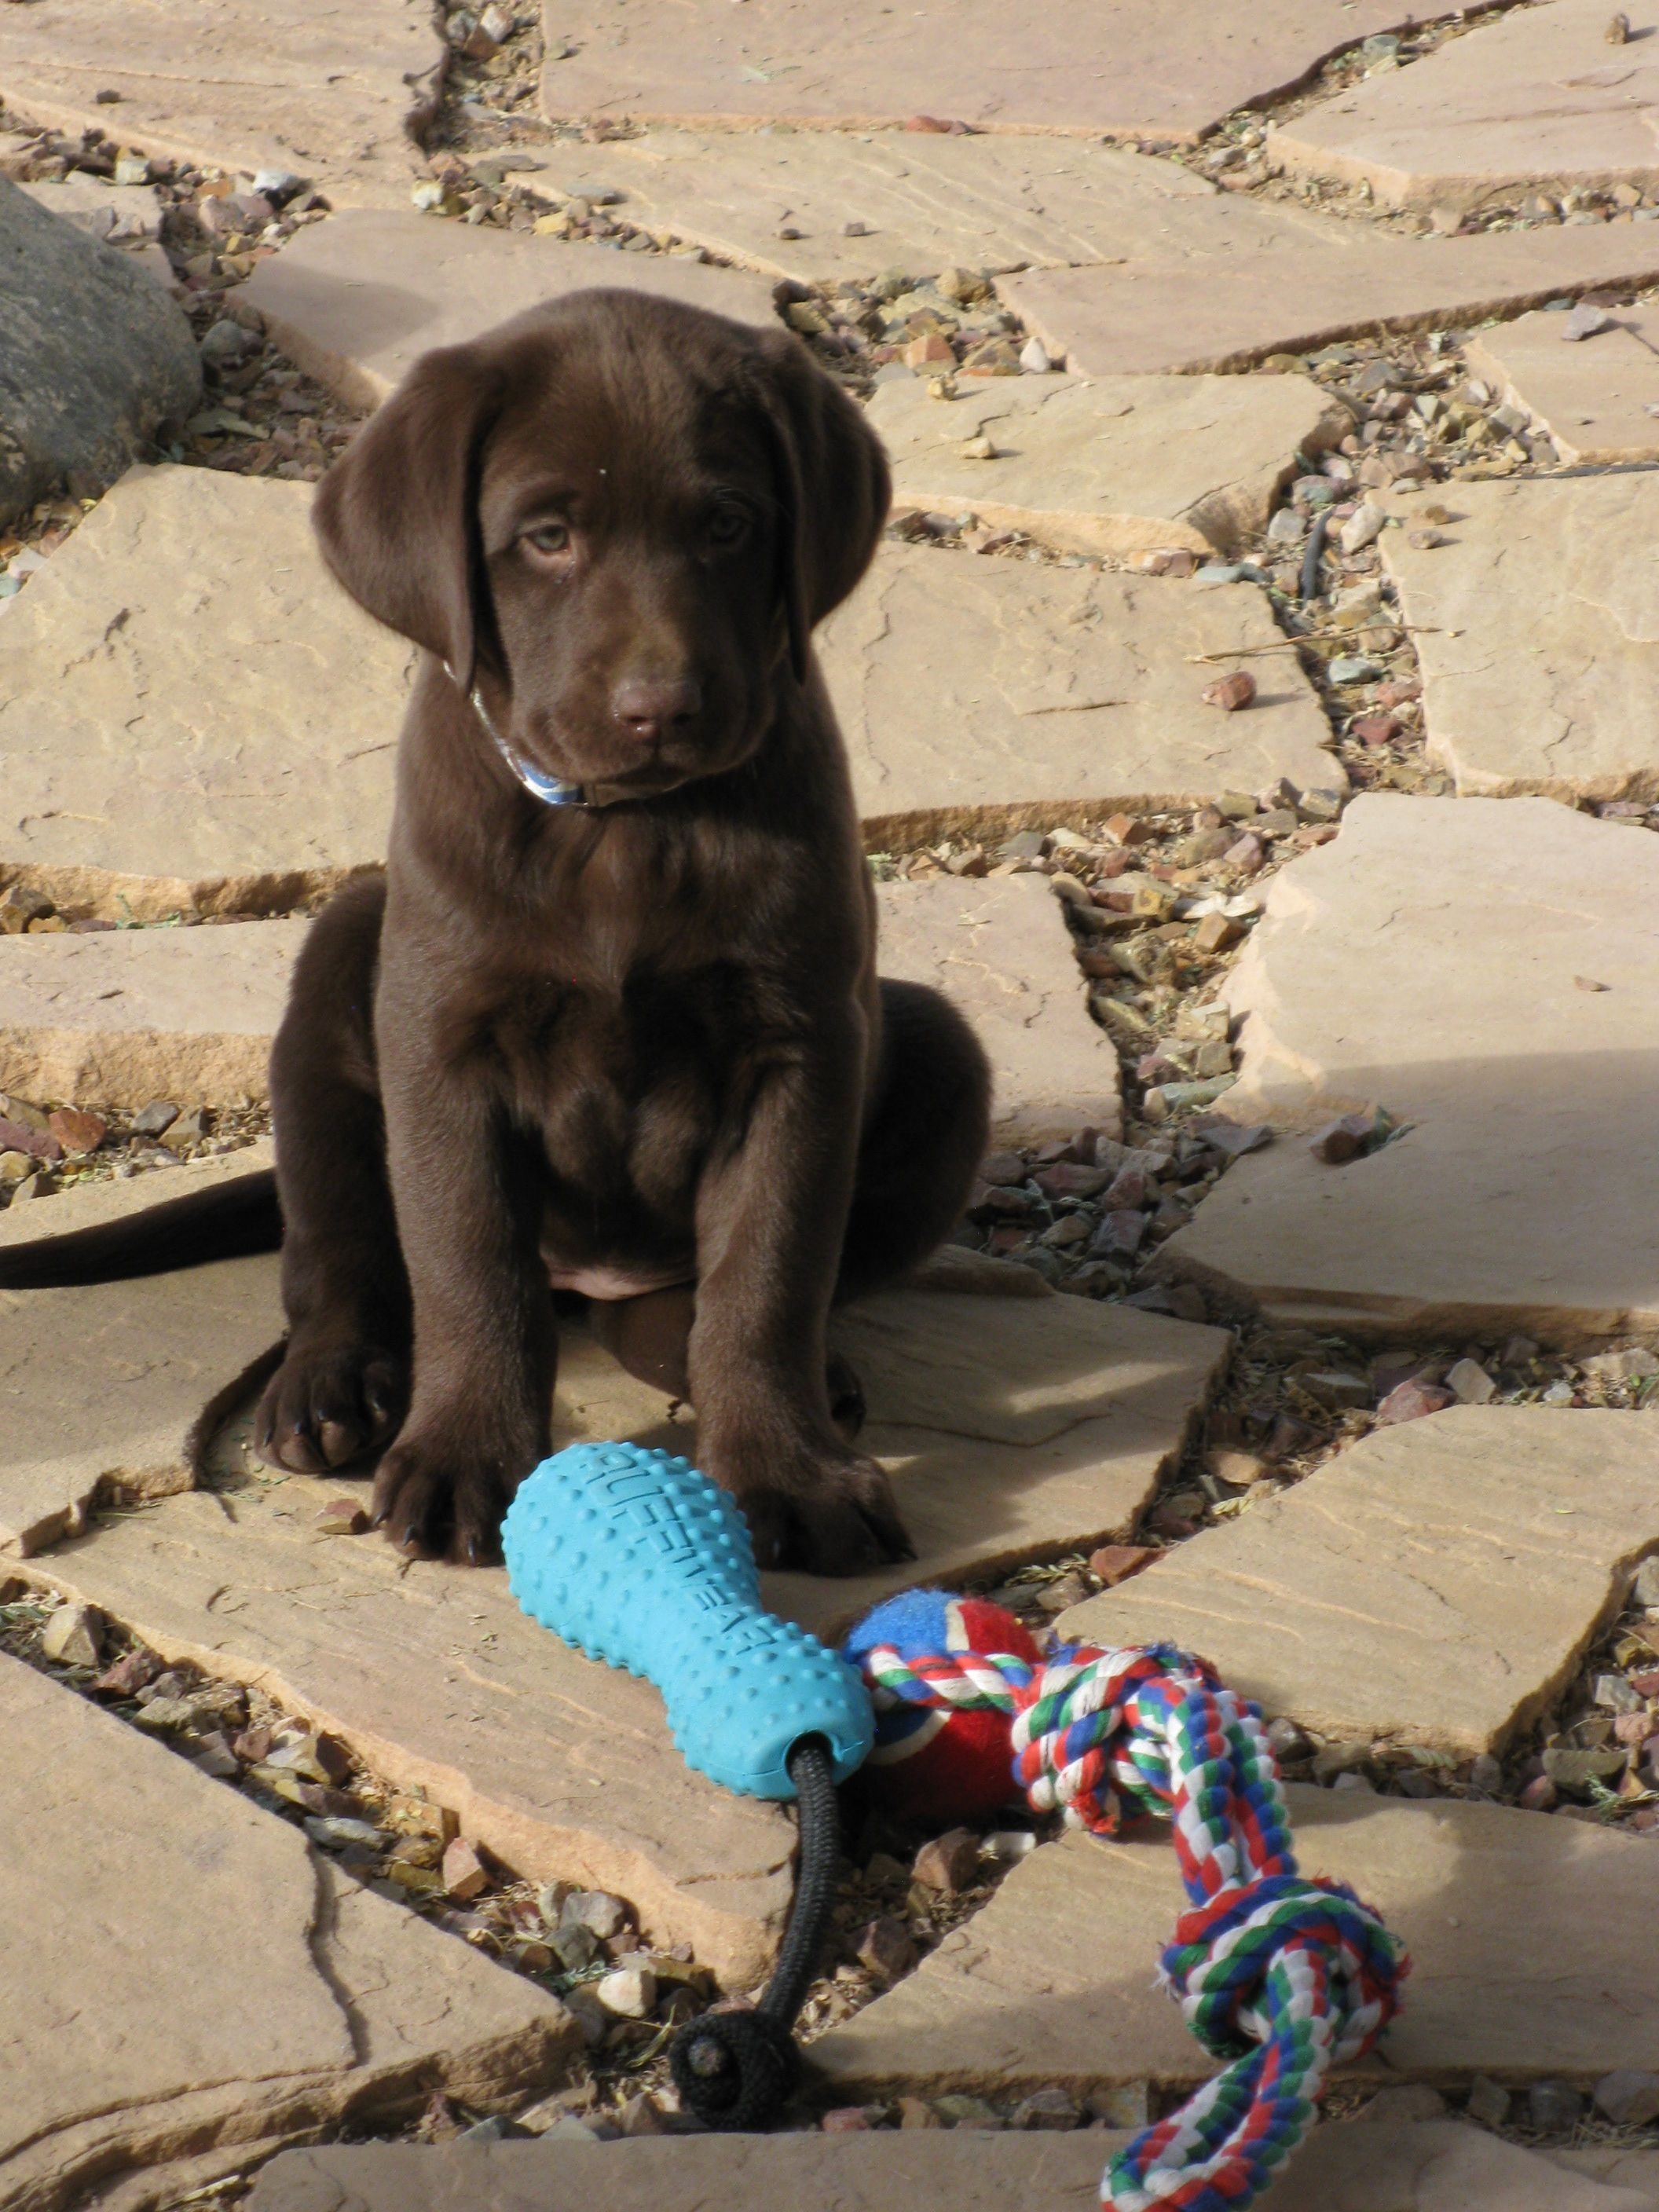 One day I will have a chocolate lab named Riley. I pre-name animals the way most people dream about kids' names. :)